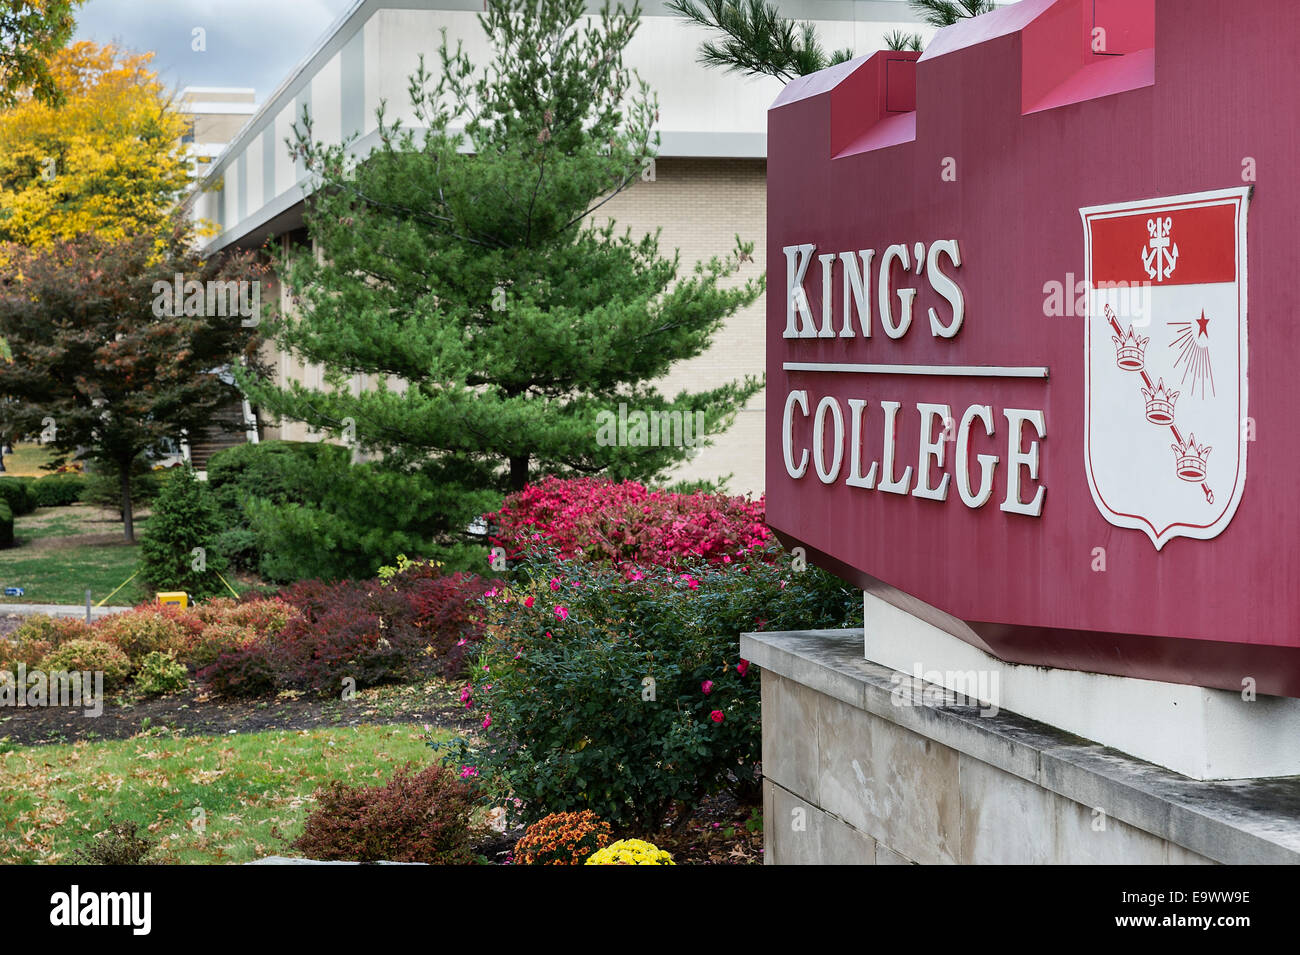 King's College Campus, Wilkes-Barre, Pennsylvania, USA - Stock Image